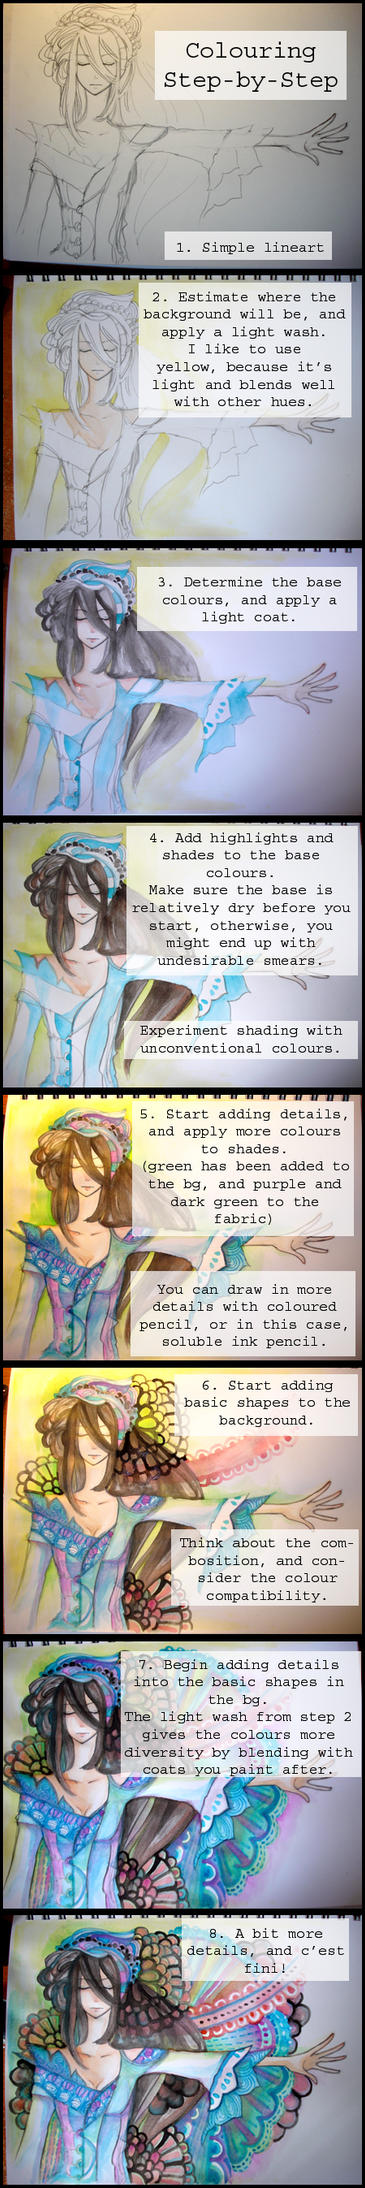 Step-by-Step Colouring by koyamori